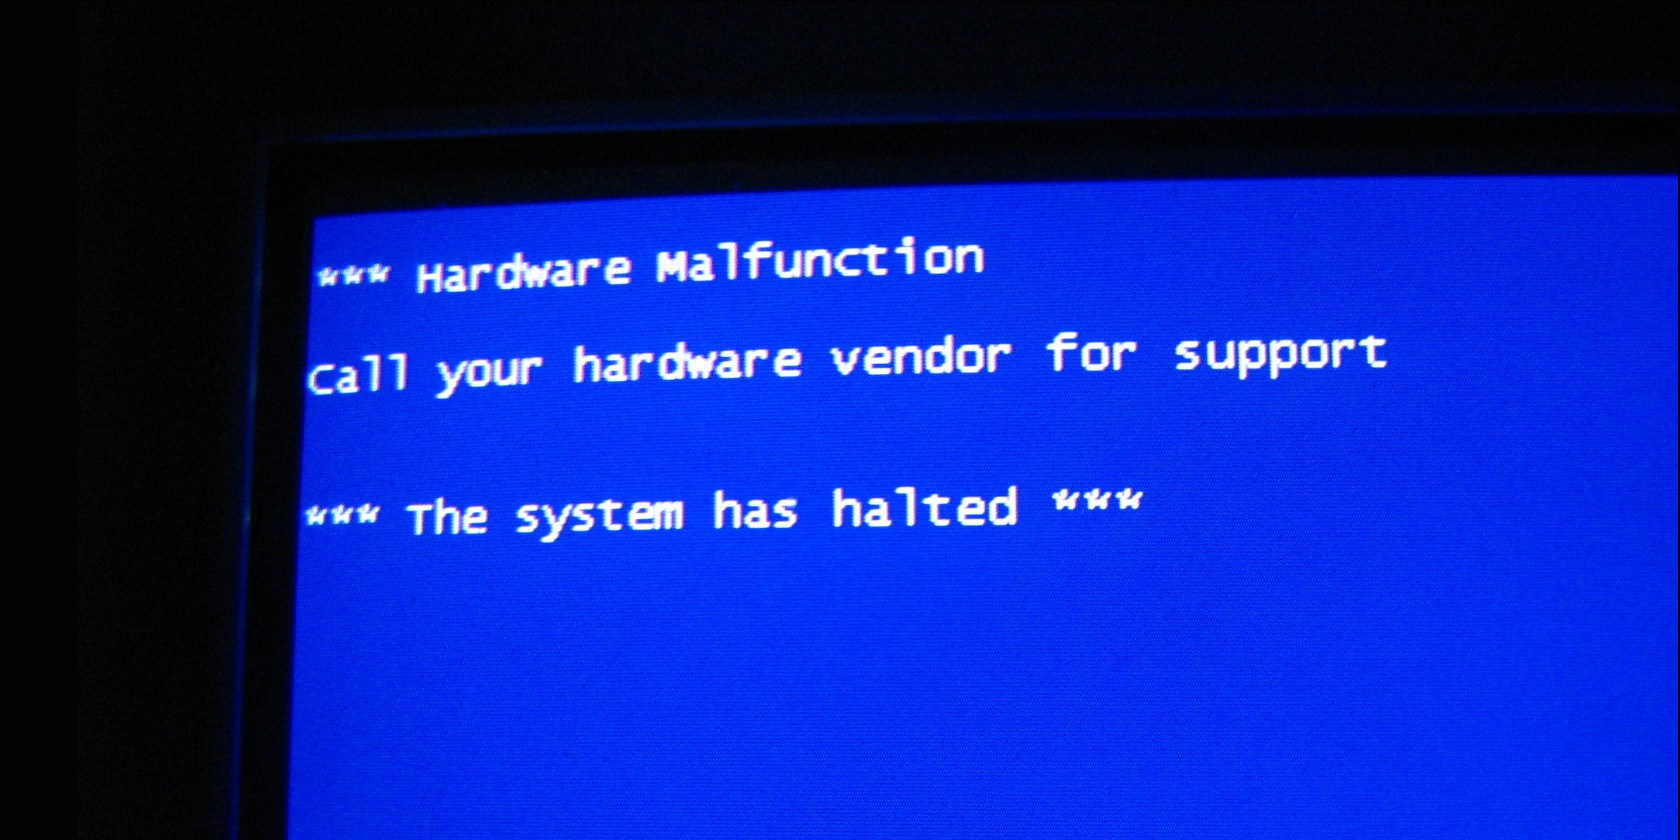 7 Warning Signs Your Computer Is Going to Crash (And What to Do)